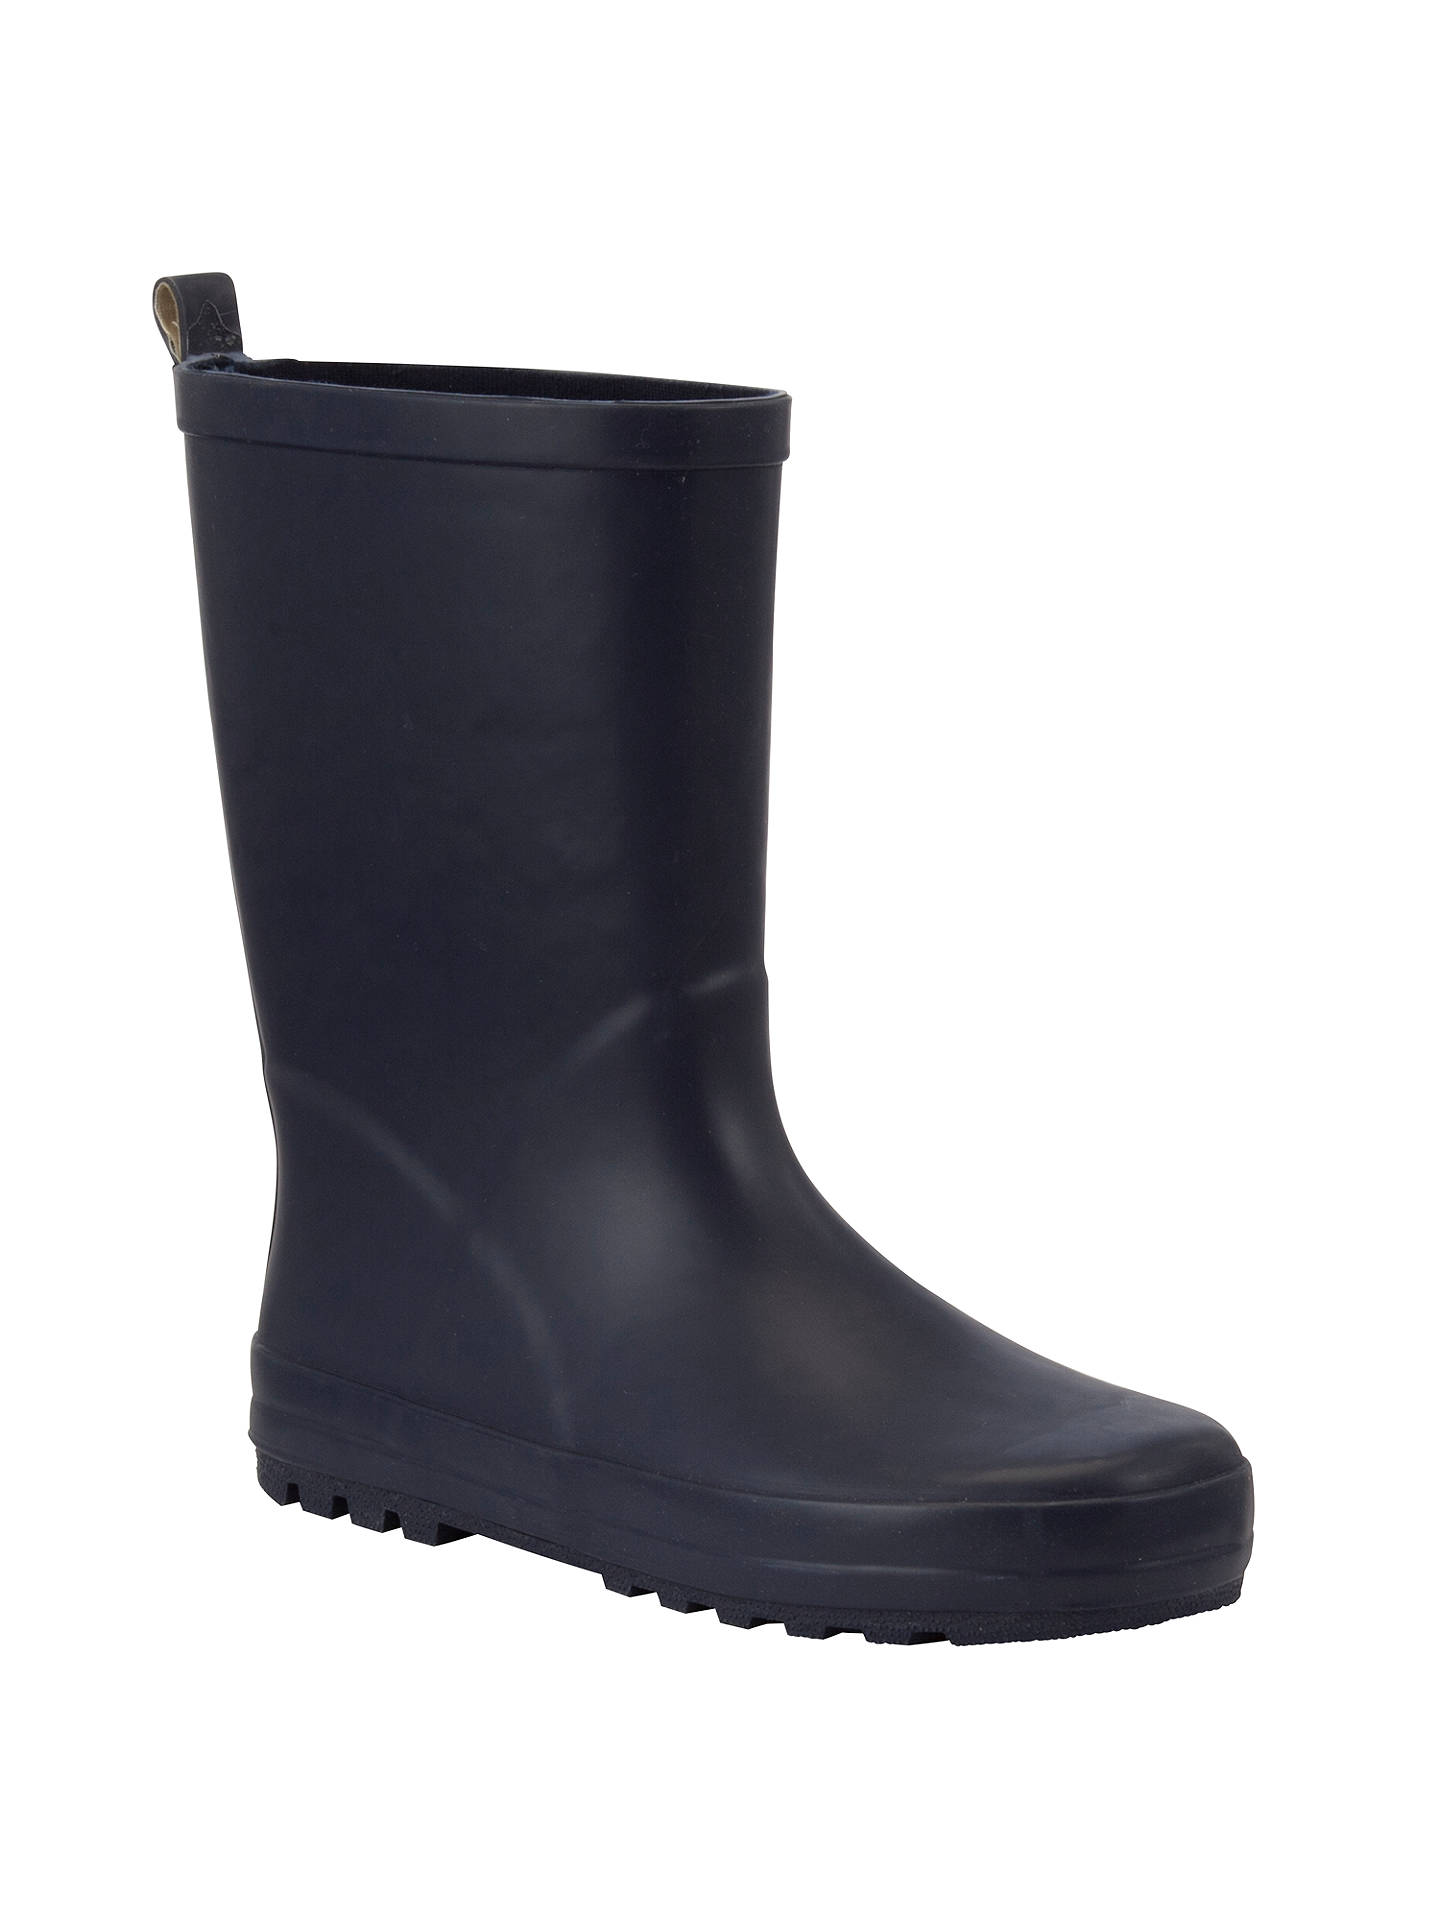 5fcc58f7029 Buy John Lewis & Partners Children's Wellington Boots, Navy, 6 Jnr Online  at johnlewis ...